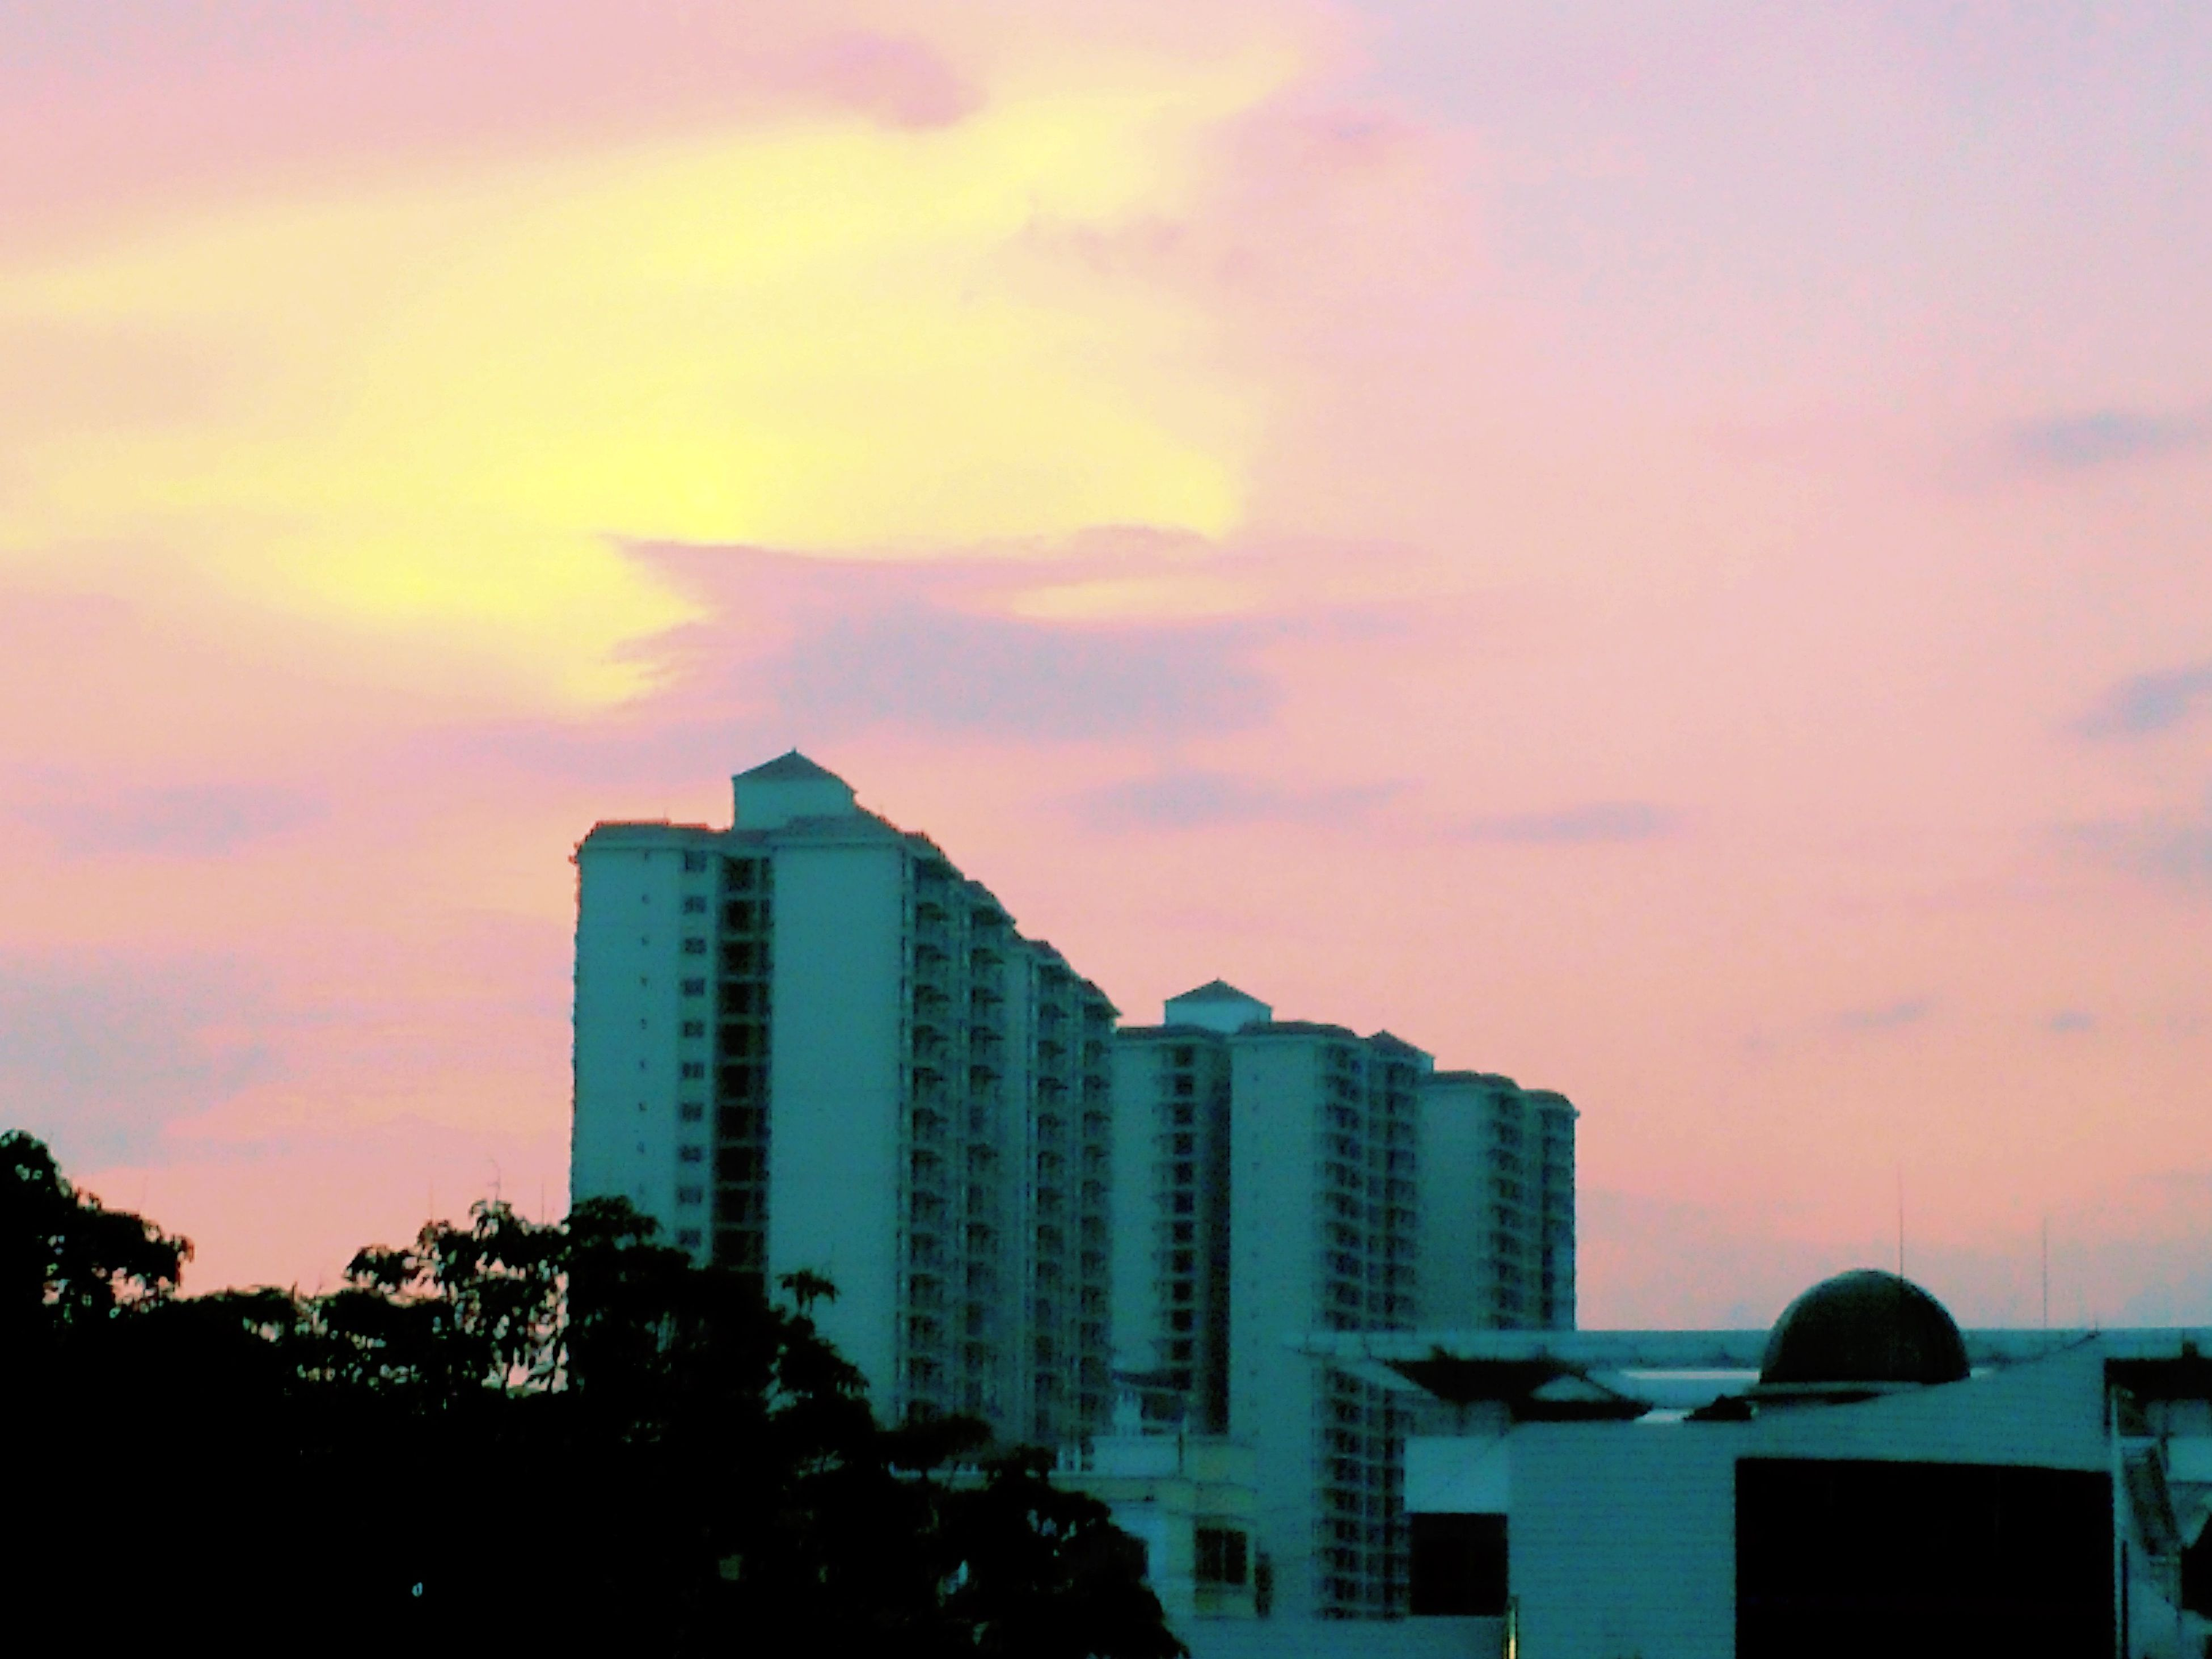 building exterior, architecture, built structure, sunset, sky, city, orange color, cloud - sky, building, residential building, low angle view, residential structure, cloud, outdoors, cloudy, house, dusk, no people, silhouette, nature